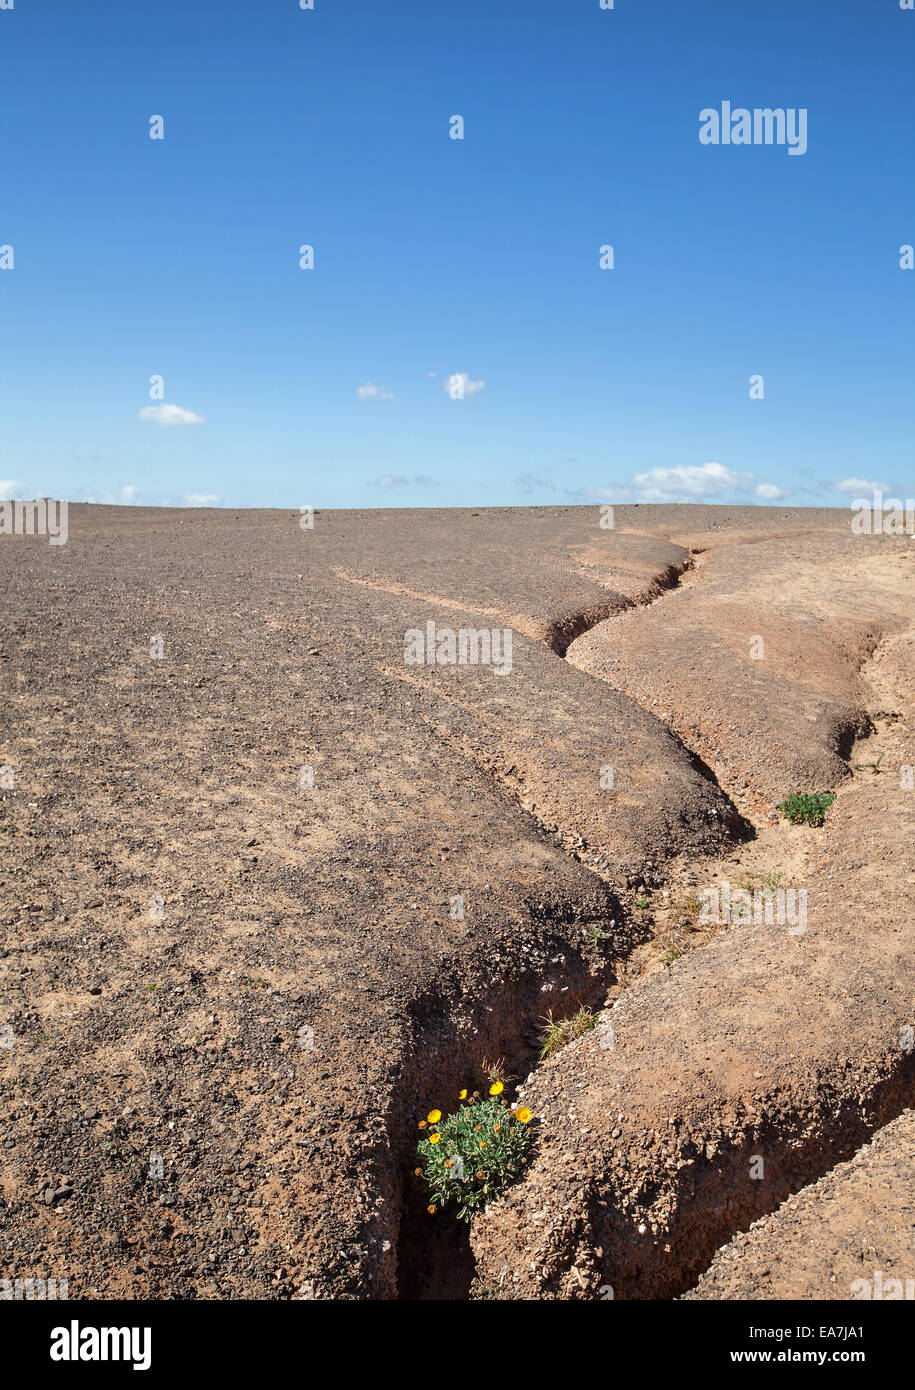 Erosion gully with blooming plant - Stock Image